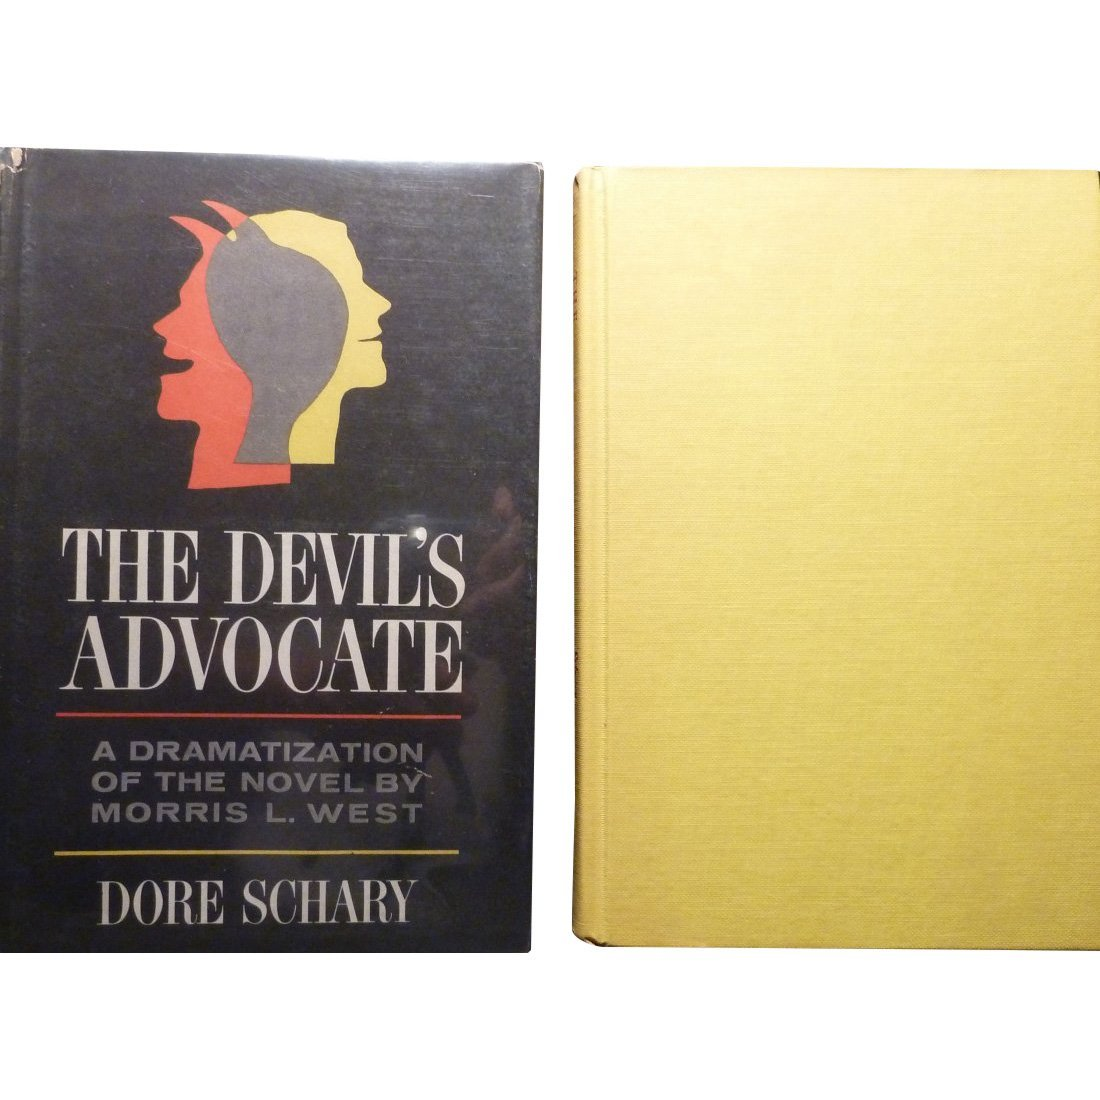 Dore Schary: The Devil's Advocate - Signed